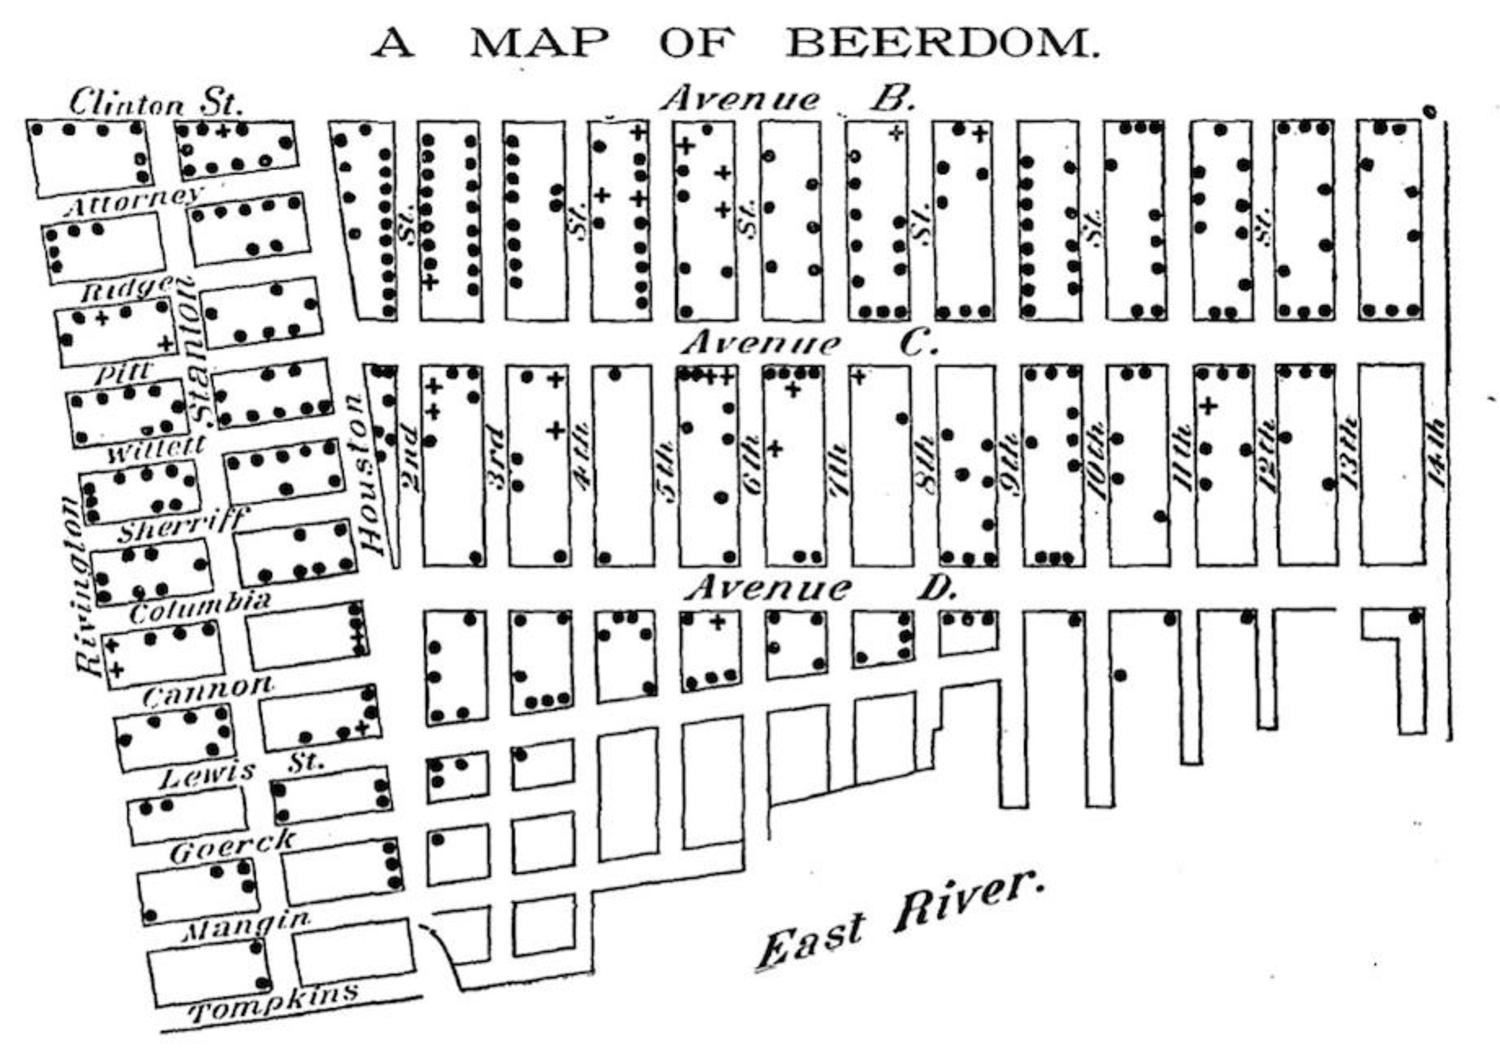 A Map of Beerdom, Lower East Side, New York City, 1885